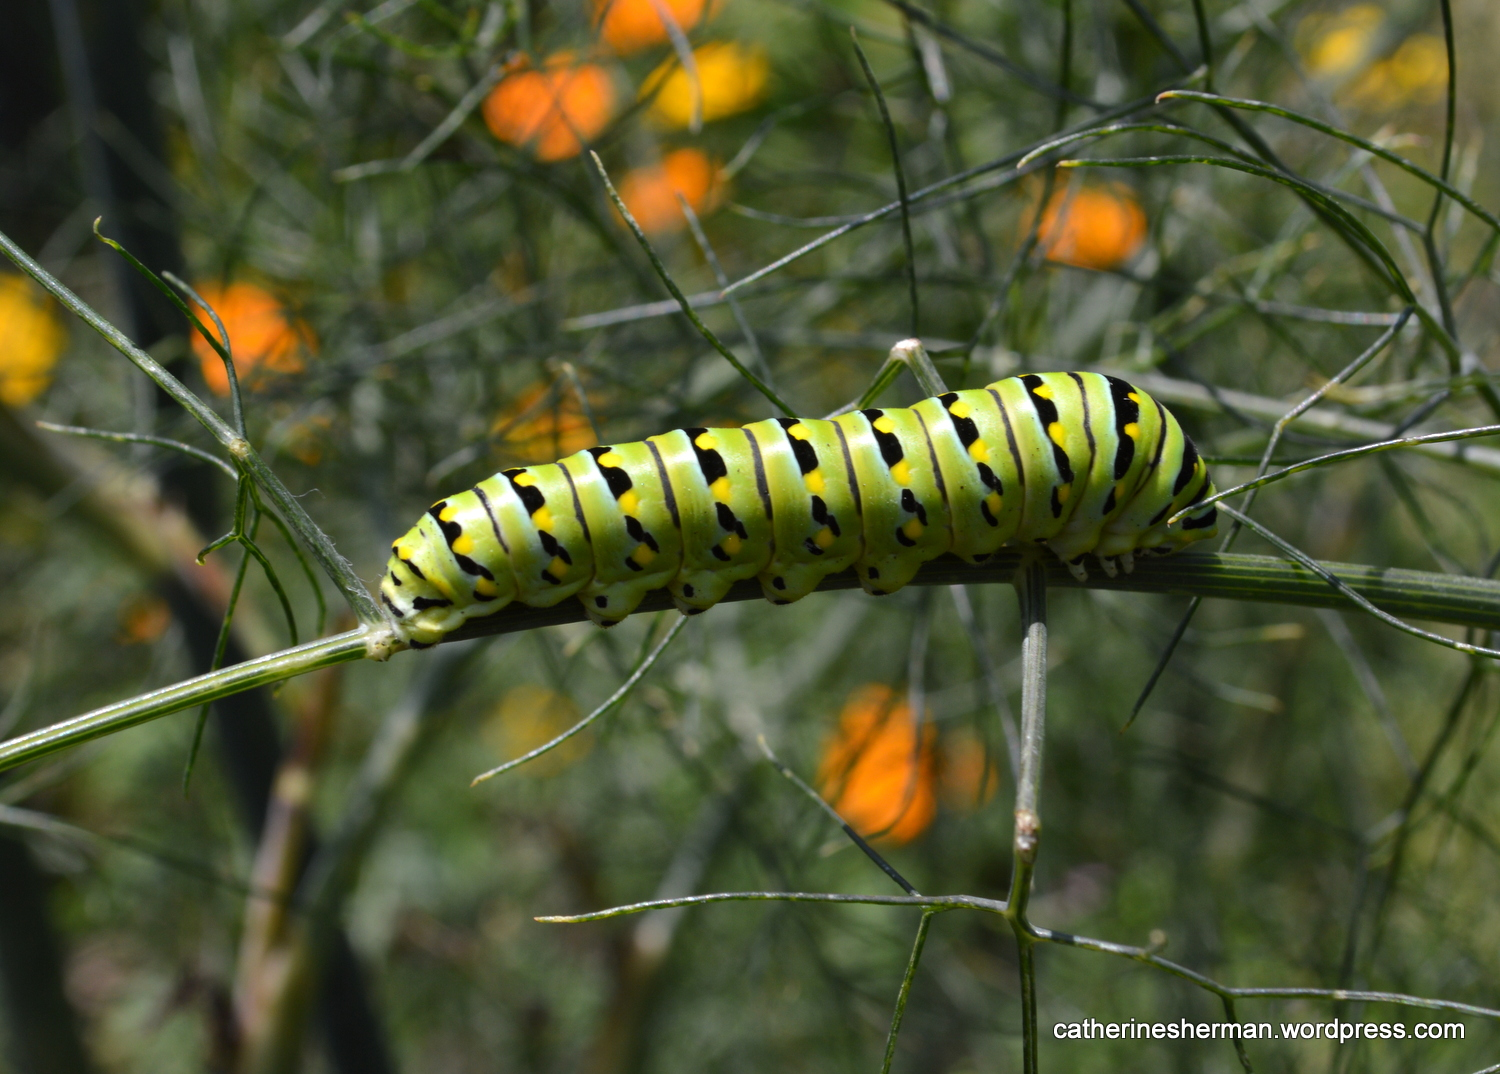 A Black Swallowtail Butterfly Caterpillar Rests After A Day Of Eating  Fennel. Itu0027s Amazing That